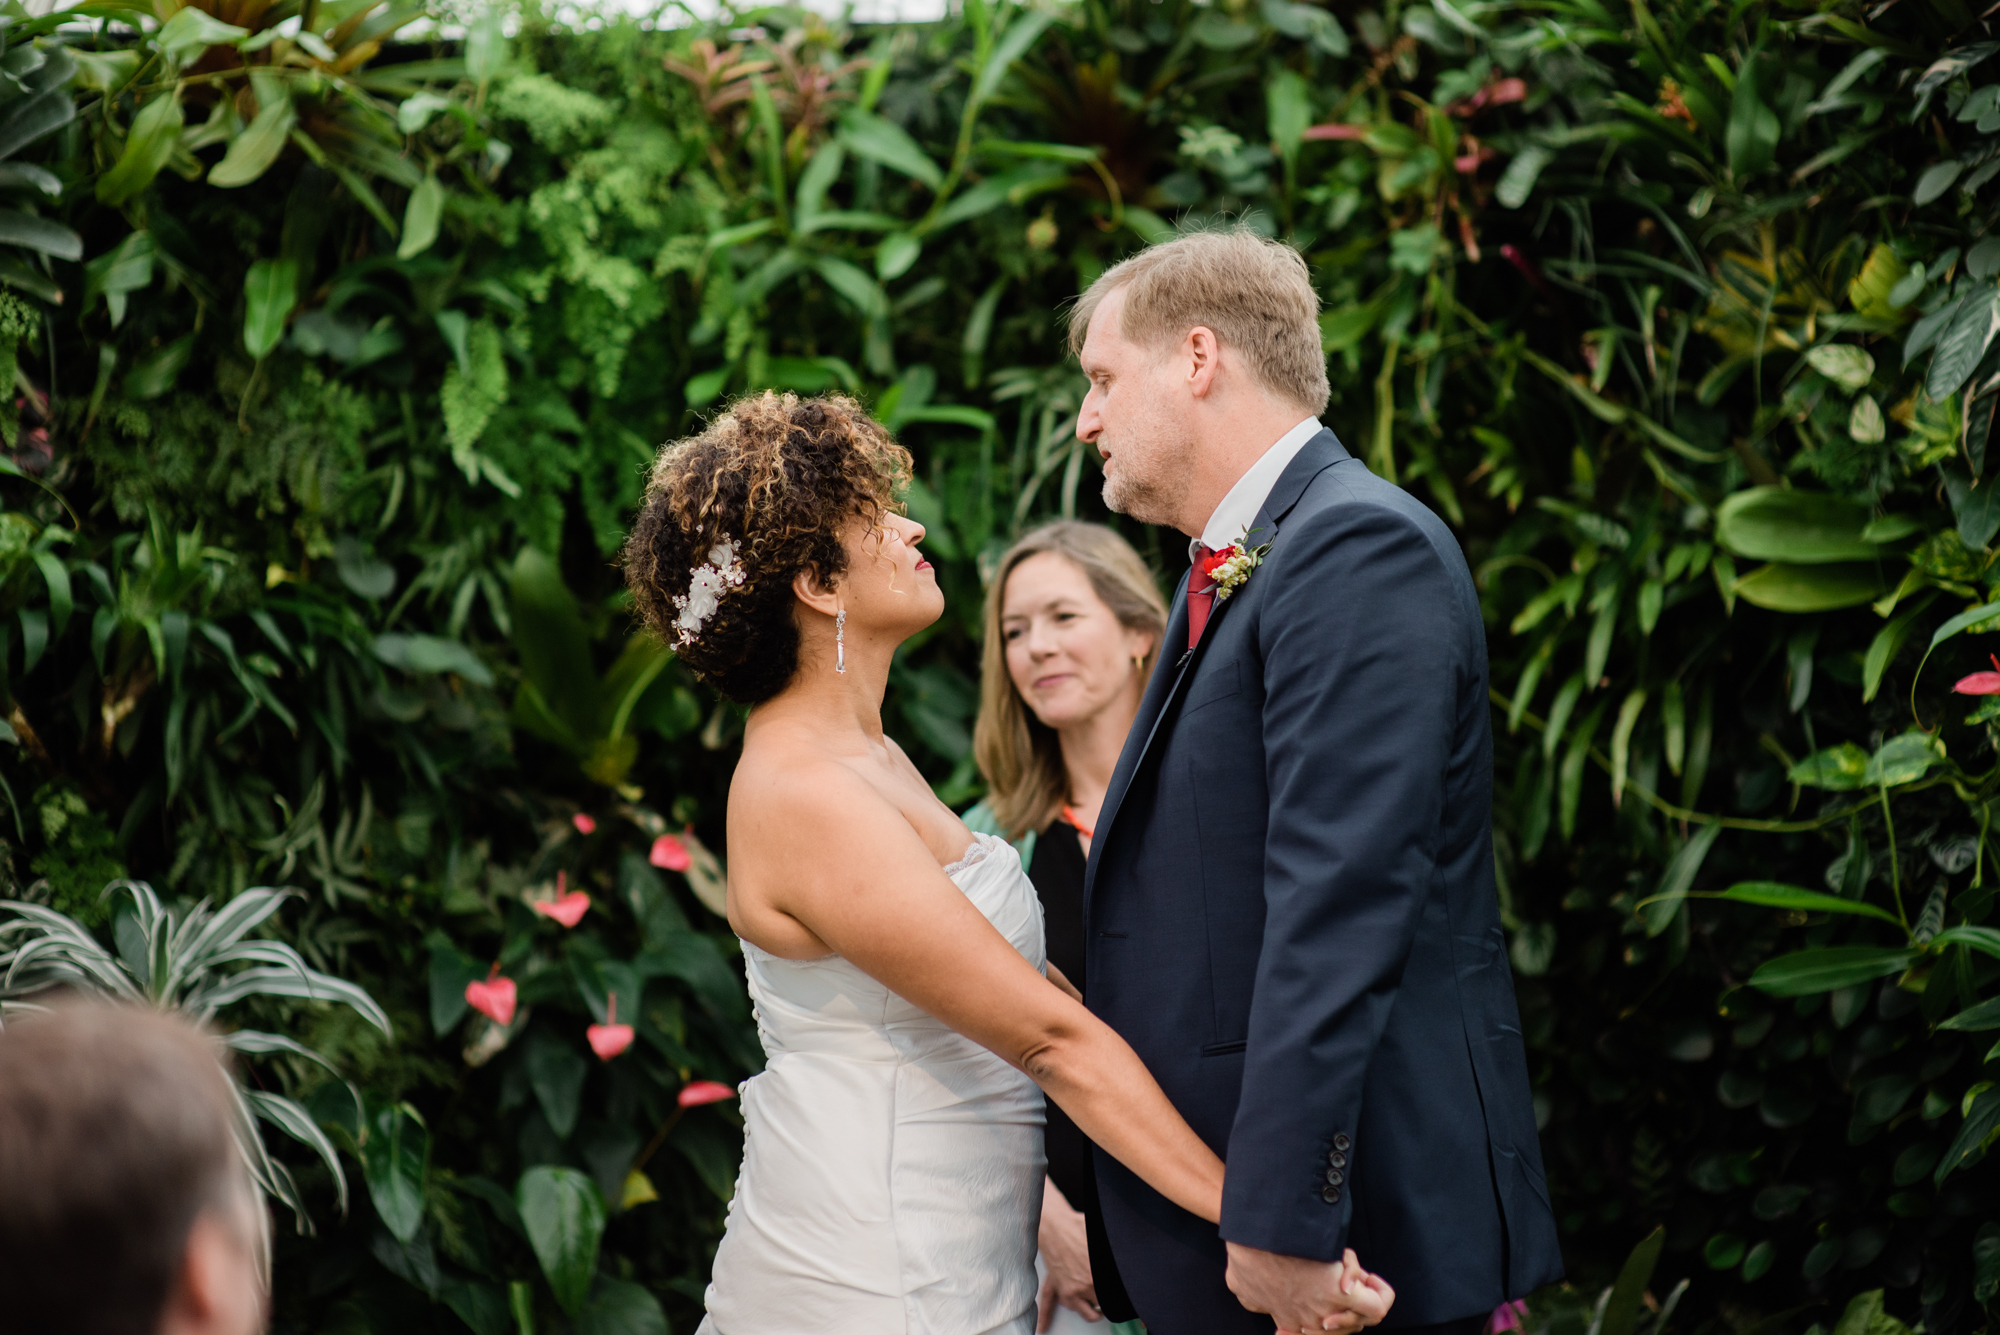 Conservatory_of_Flowers_San_Francisco_Wedding_021.jpg